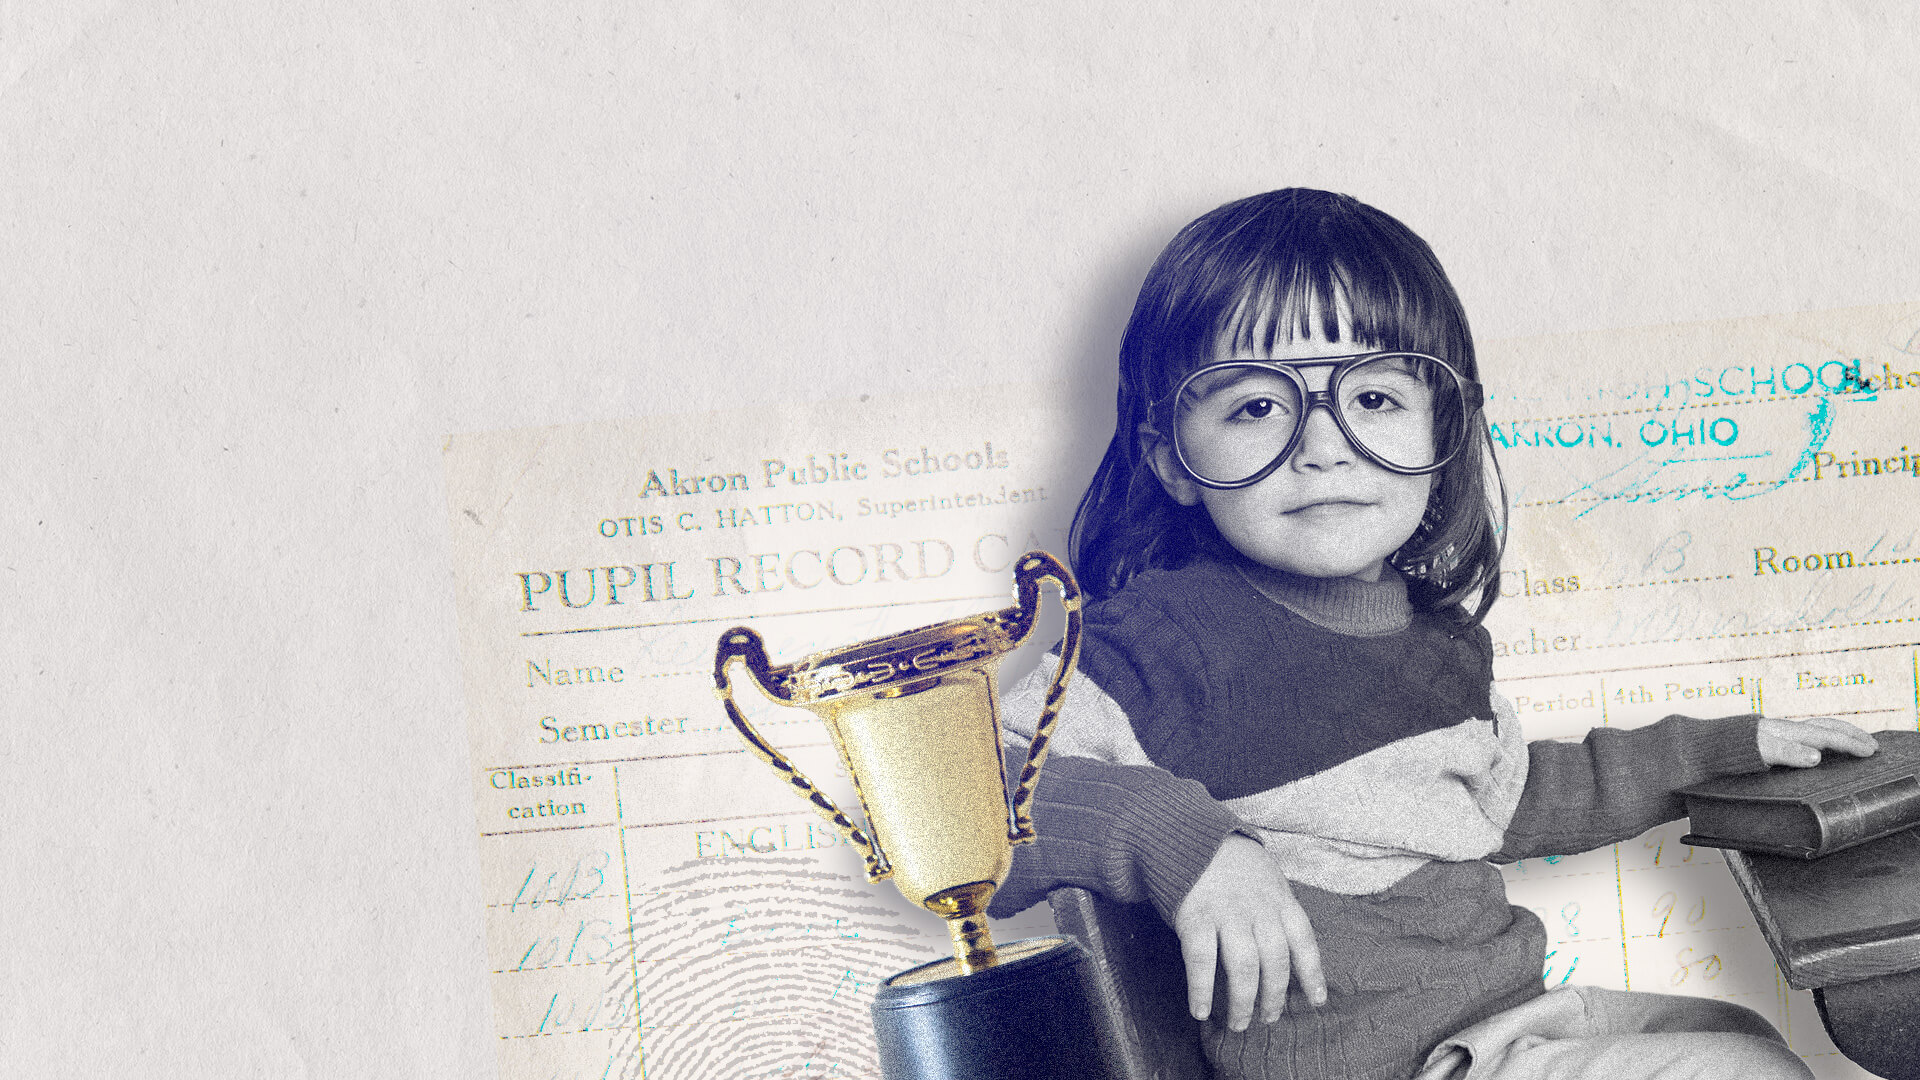 Collage of a child with a trophy and good grades